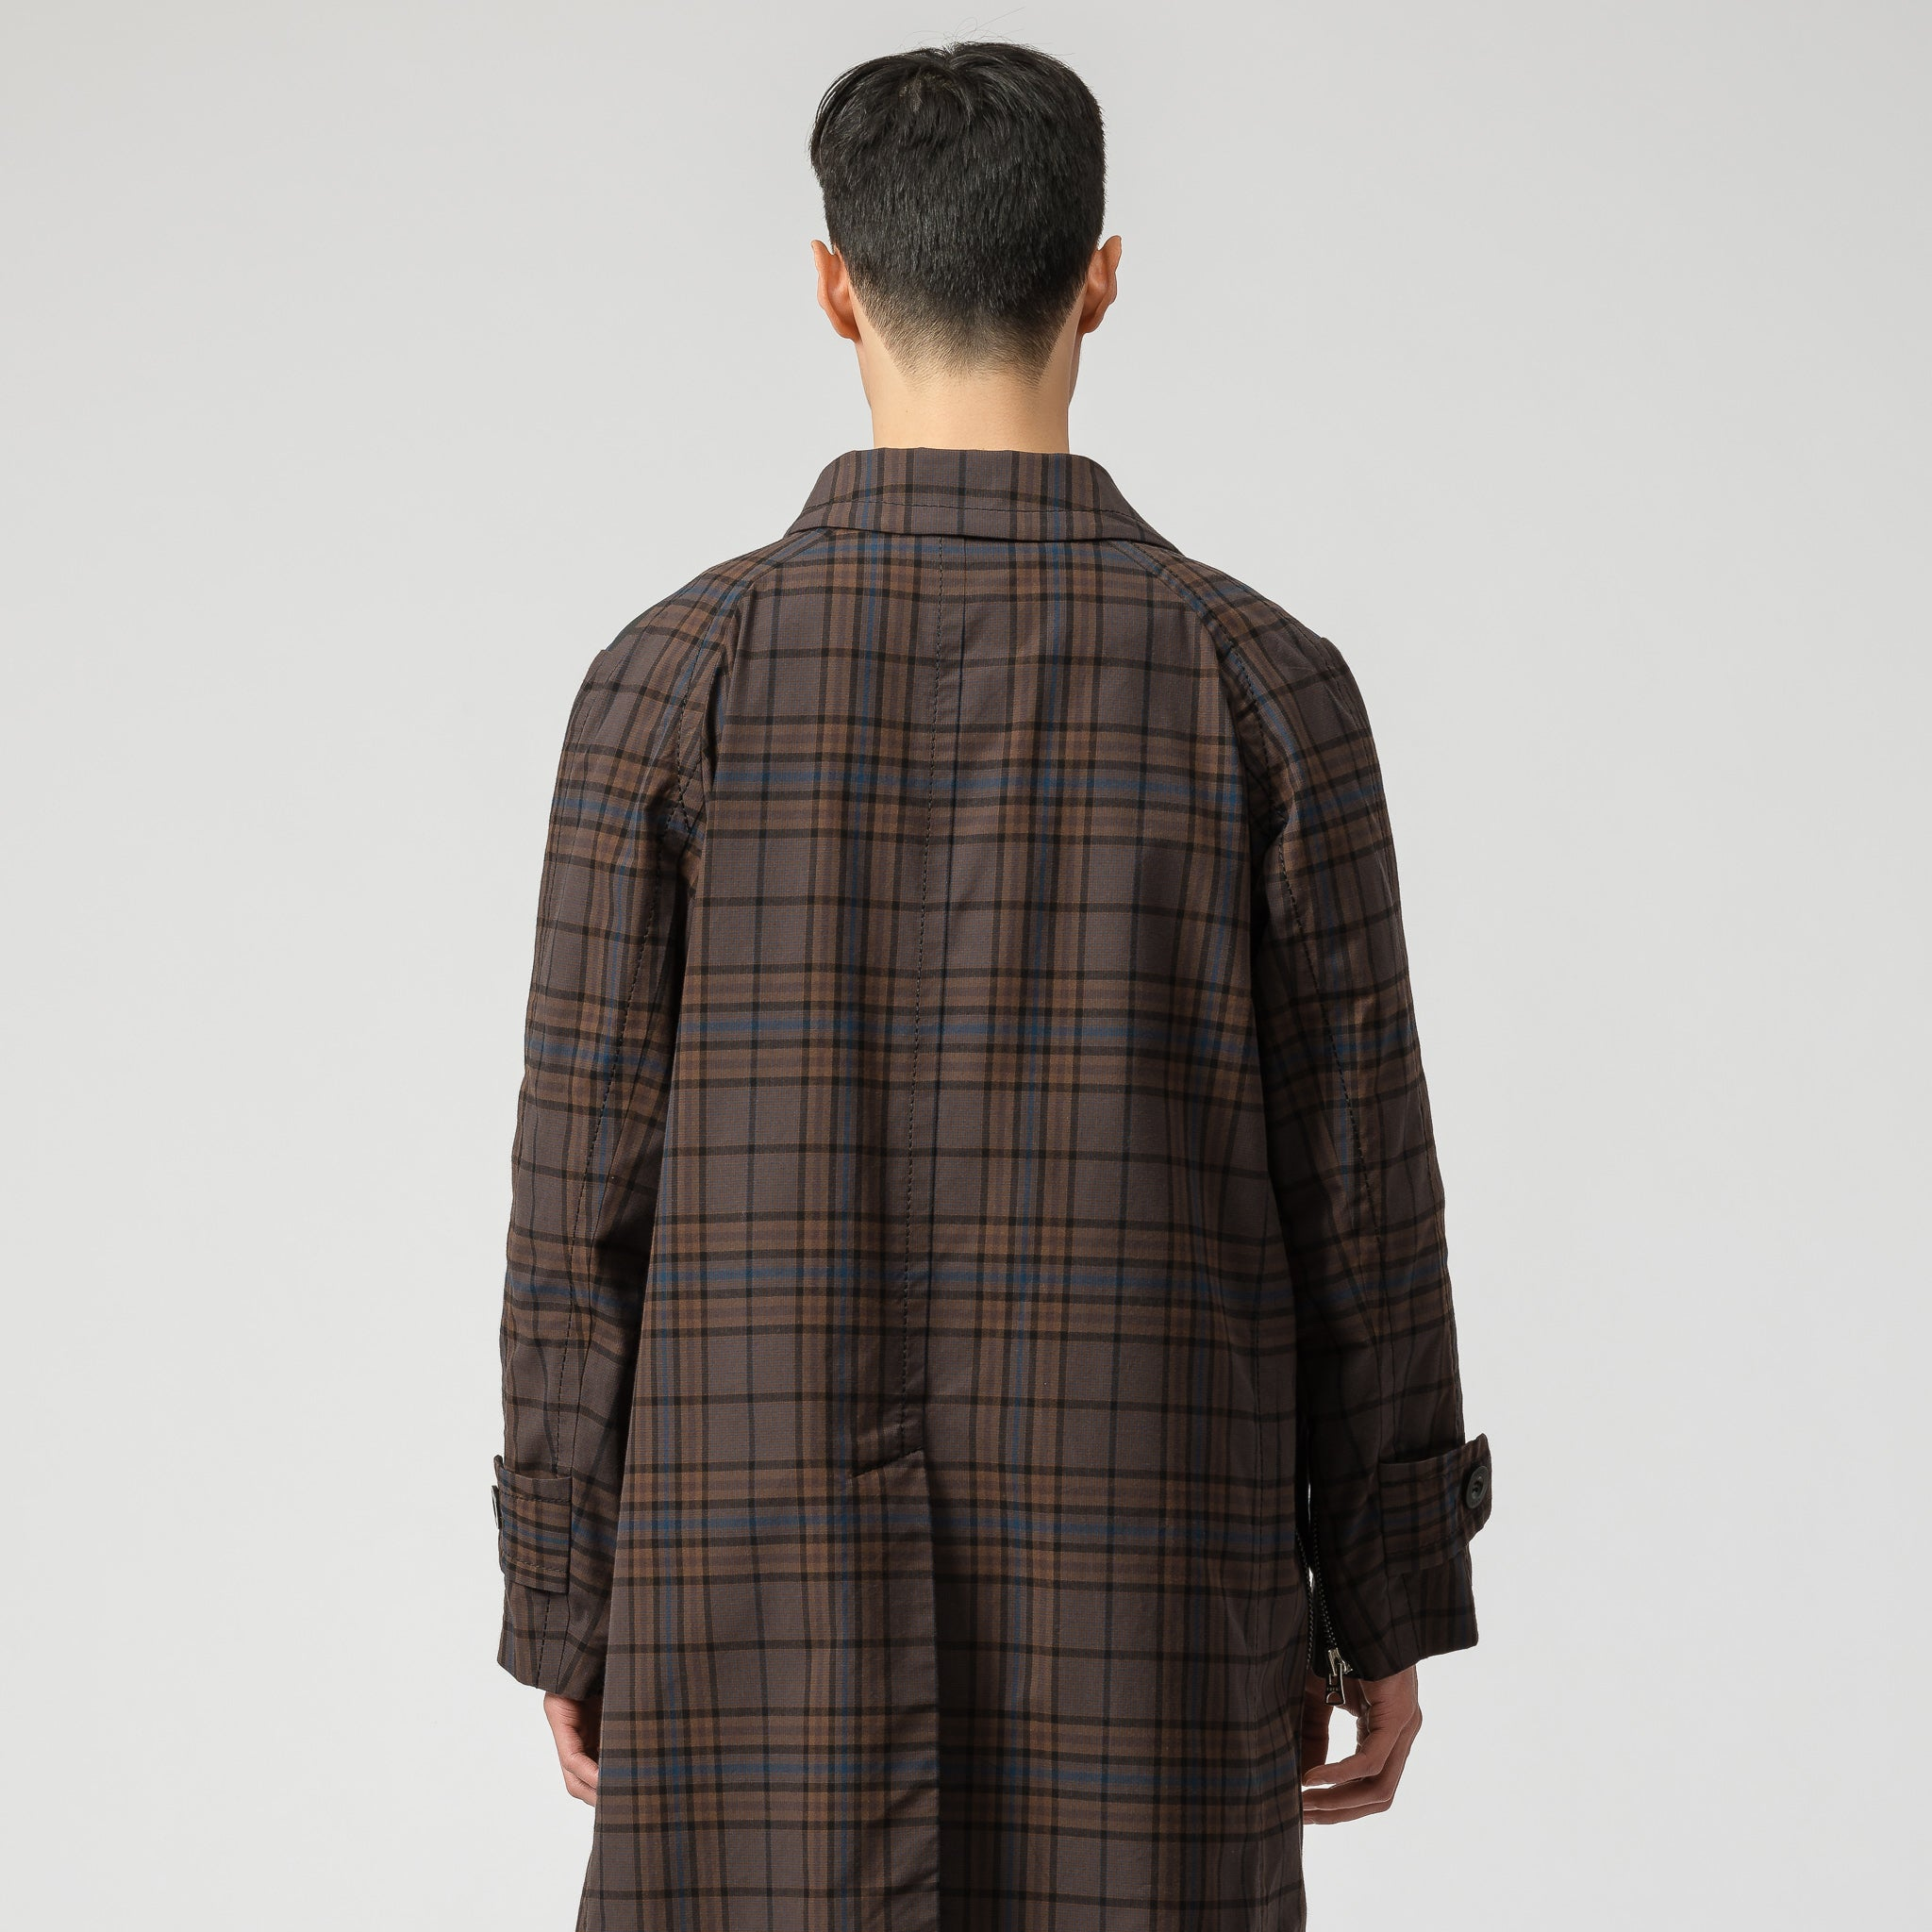 x Pendleton Coat in Brown/Blue Plaid